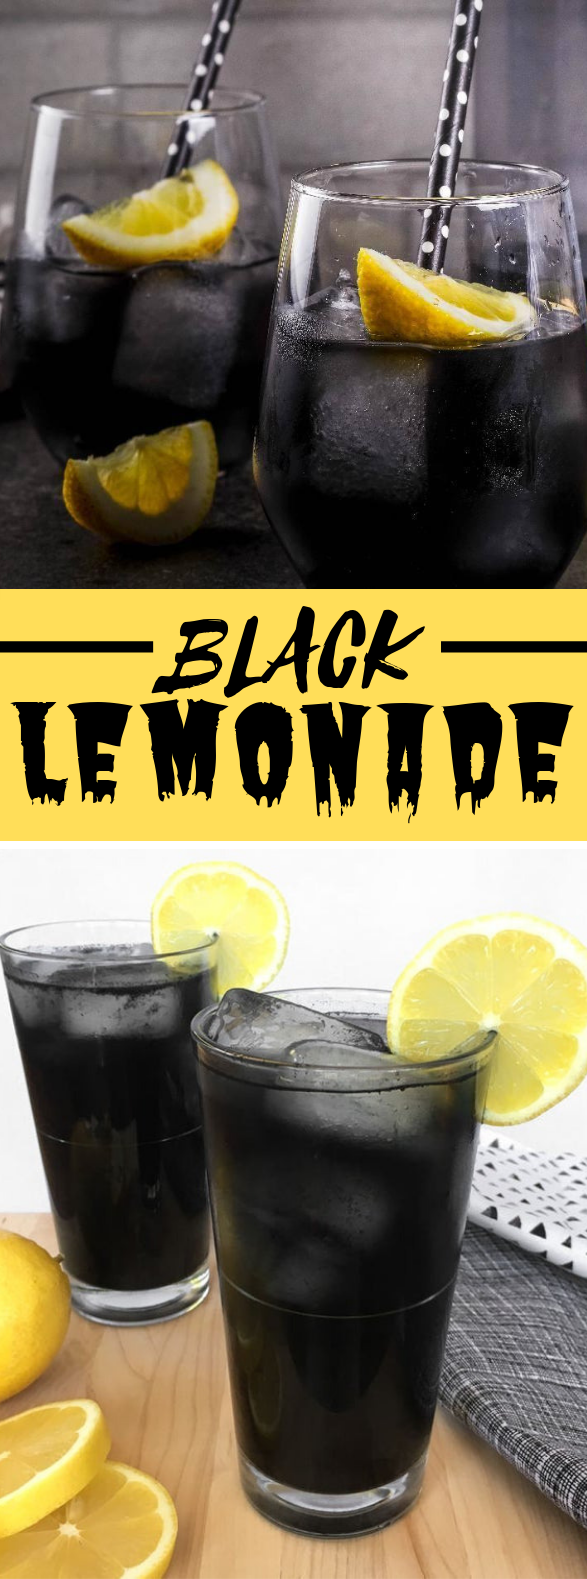 Black Lemonade #drinks #charcoal